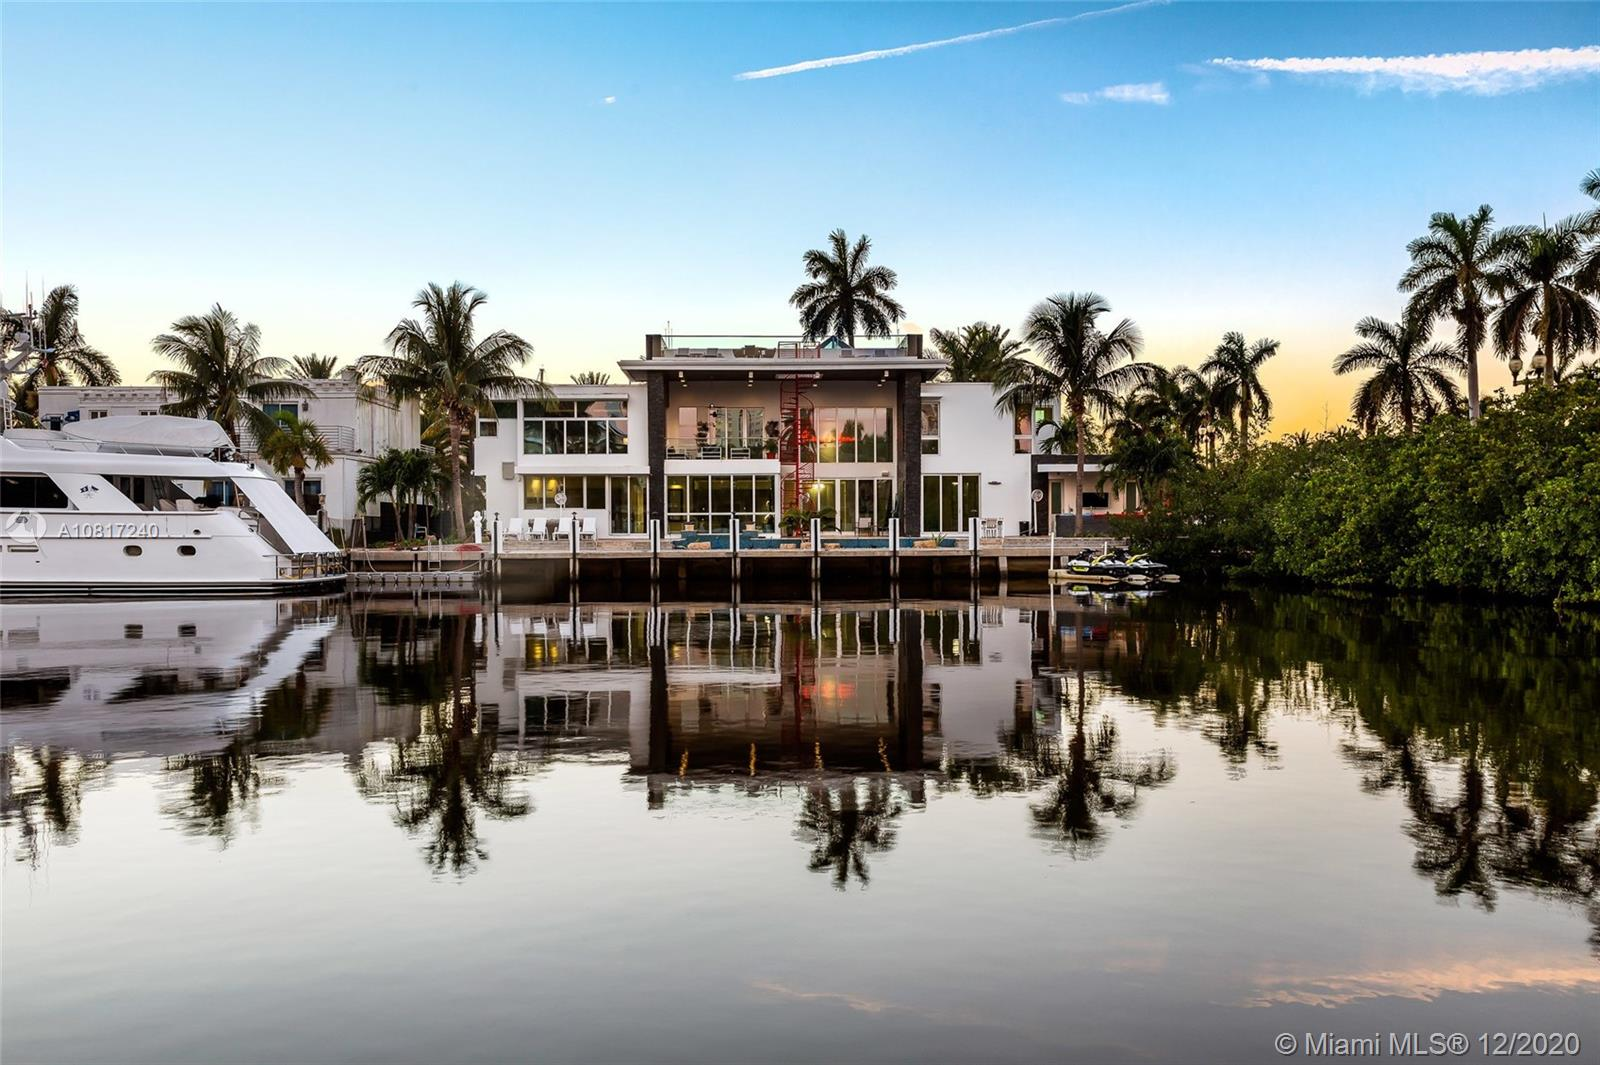 Weekly rental price $17,500! Luxurious 7 bedrooms + 7.5 bathrooms with a custom-designed modern luxury residence with brand new Italian furniture on a wide canal in the Las Olas Isles, w/160' water frontage on the wide canal & turning basin. Dock 100' yacht. Top-of-line chef's kitchen, gas fireplaces, elevator, integrated lighting & sound systems, pyramid skylight, impact windows, 4 A/C units, motorized blinds, an outdoor oasis with a beautiful rooftop deck w/artificial grass. Walking distance to restaurants and beach. Please note that the price shown is a weekly price. We can give a discount if inquiring about a monthly price.